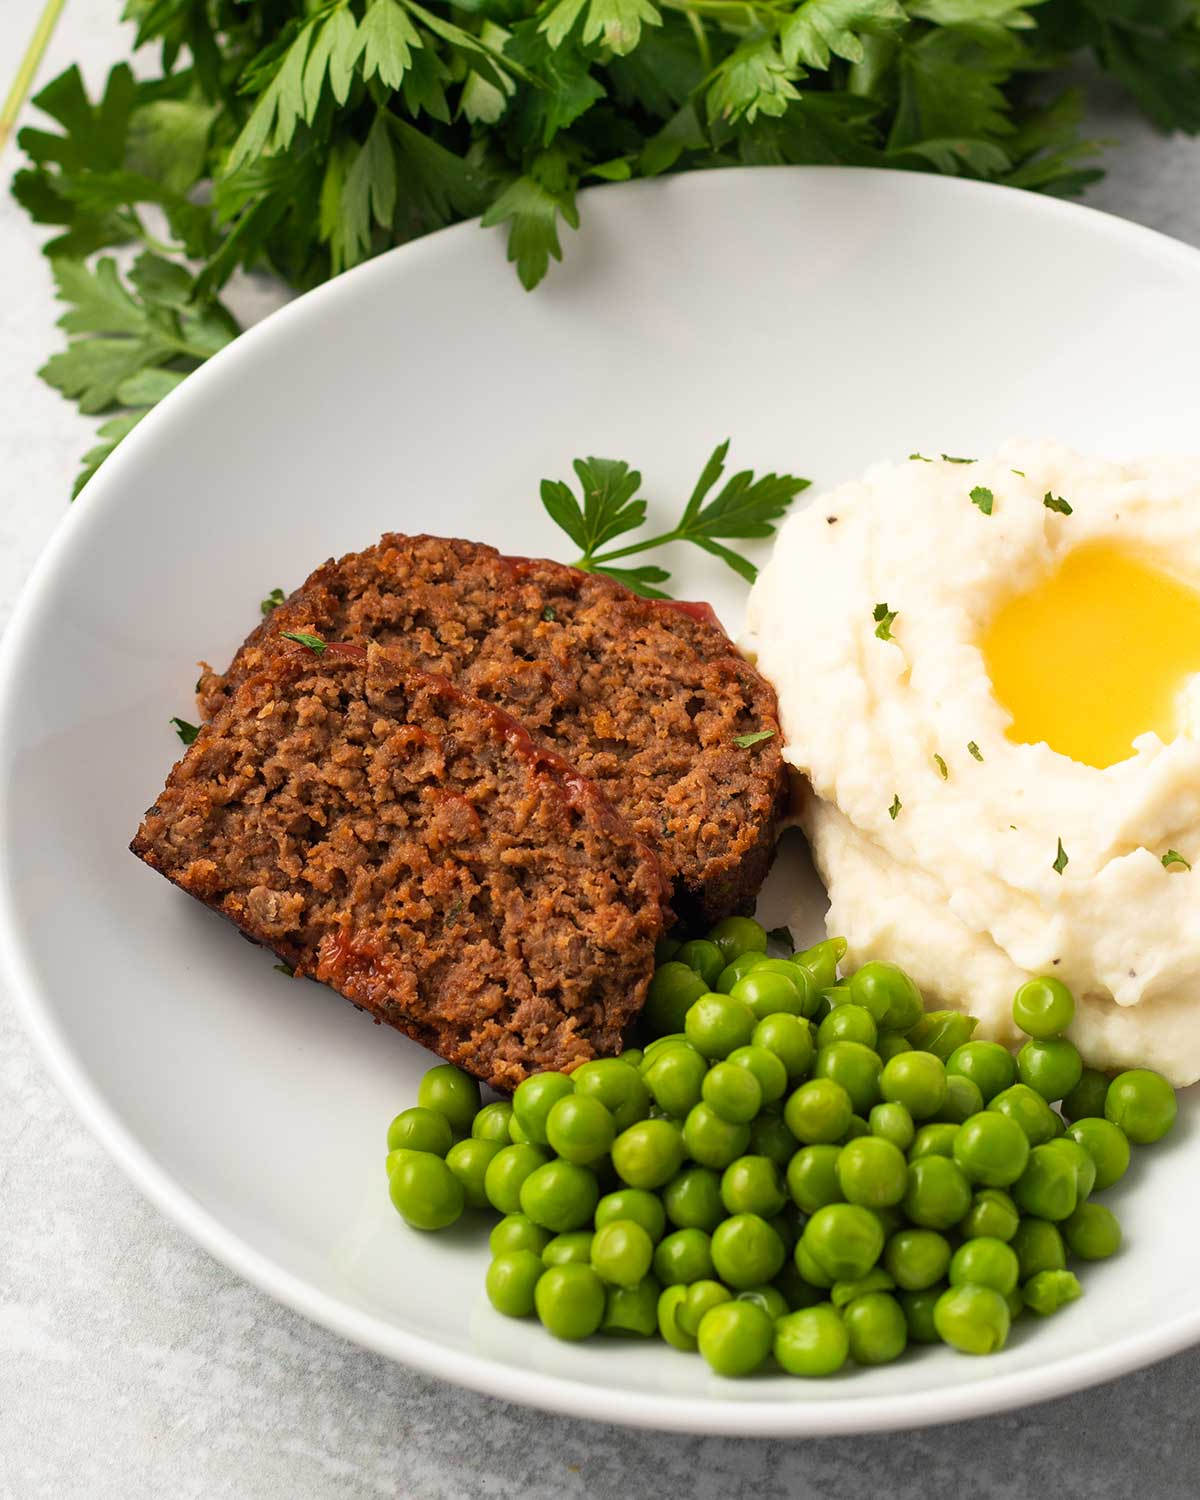 A round plate containing two slices of meatloaf, some mashed potatoes with vegan butter, and peas. There is parsley in the background and some sprinkled on the plate for garnish.